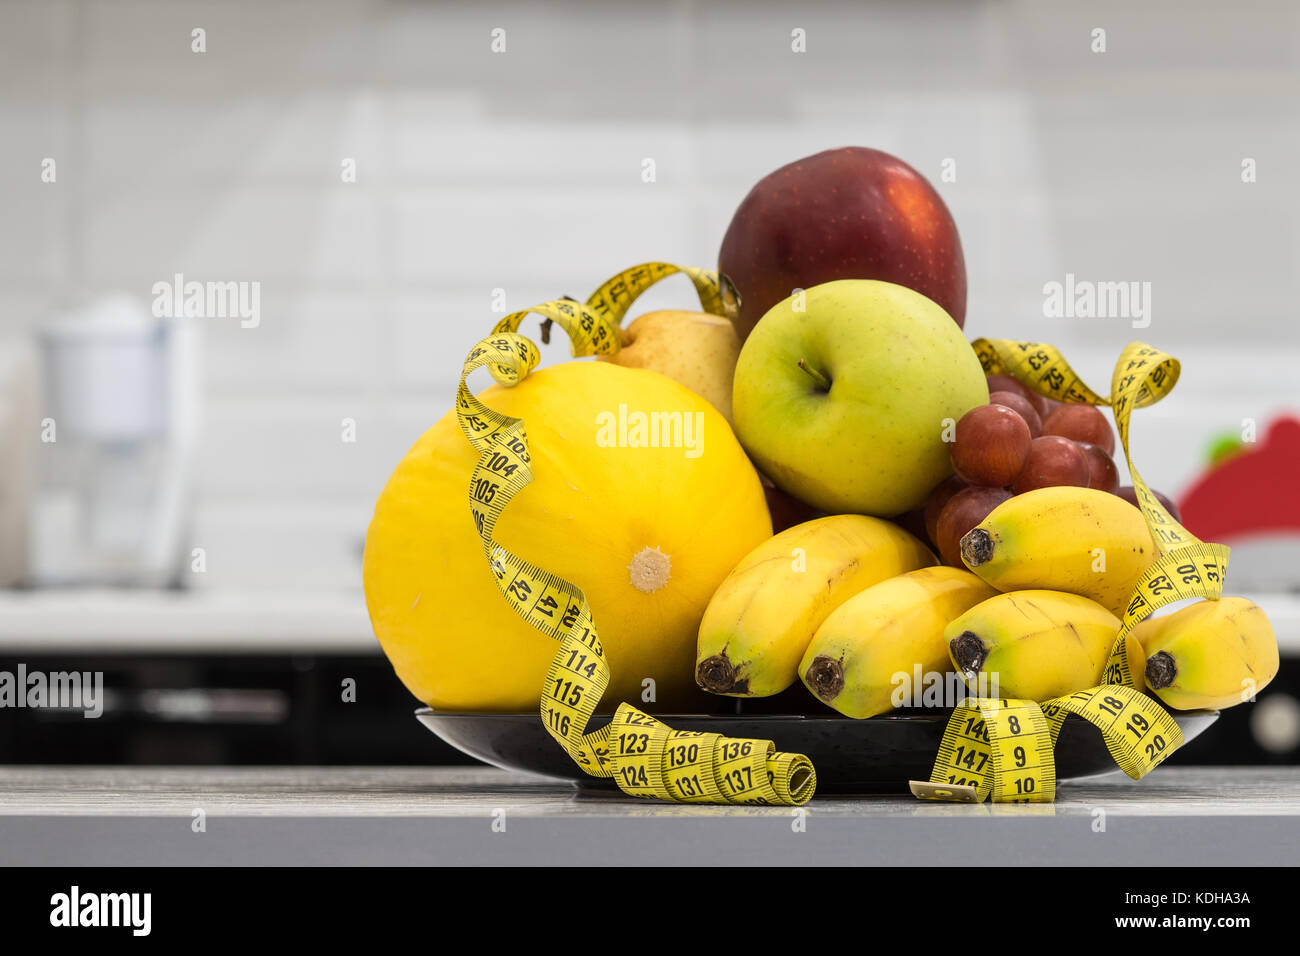 Concept of diet. Low-calorie fruit diet. Diet for weight loss. Plate with measuring tape and fruits on the table. - Stock Image